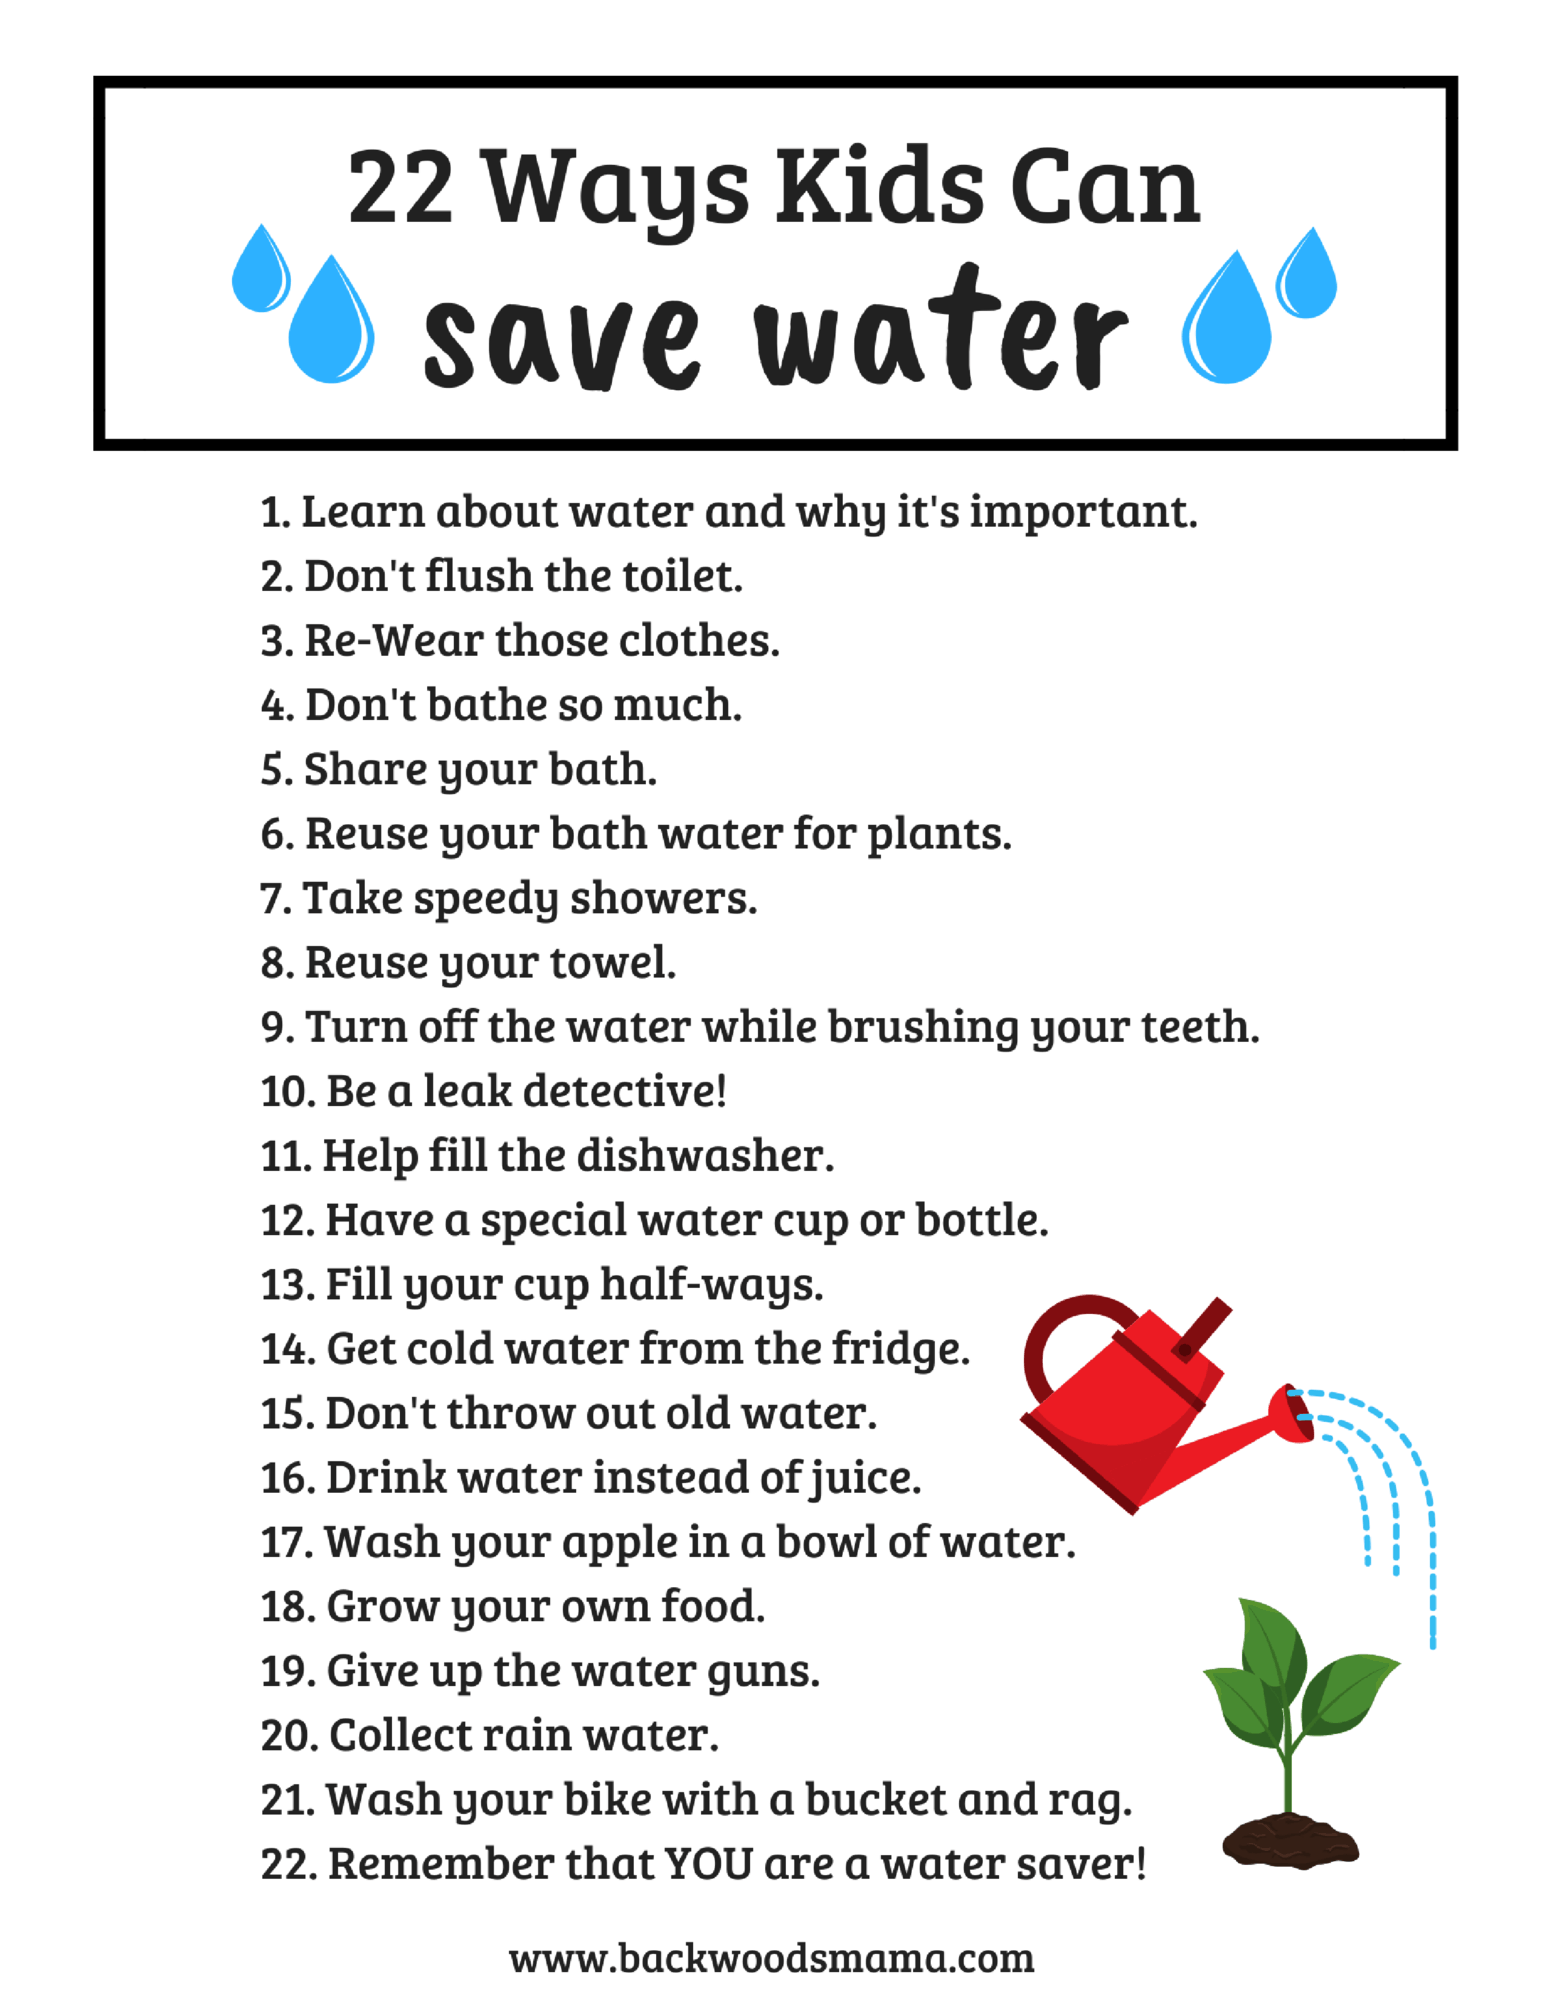 22 Ways Kids Can Save Water Backwoods Mama